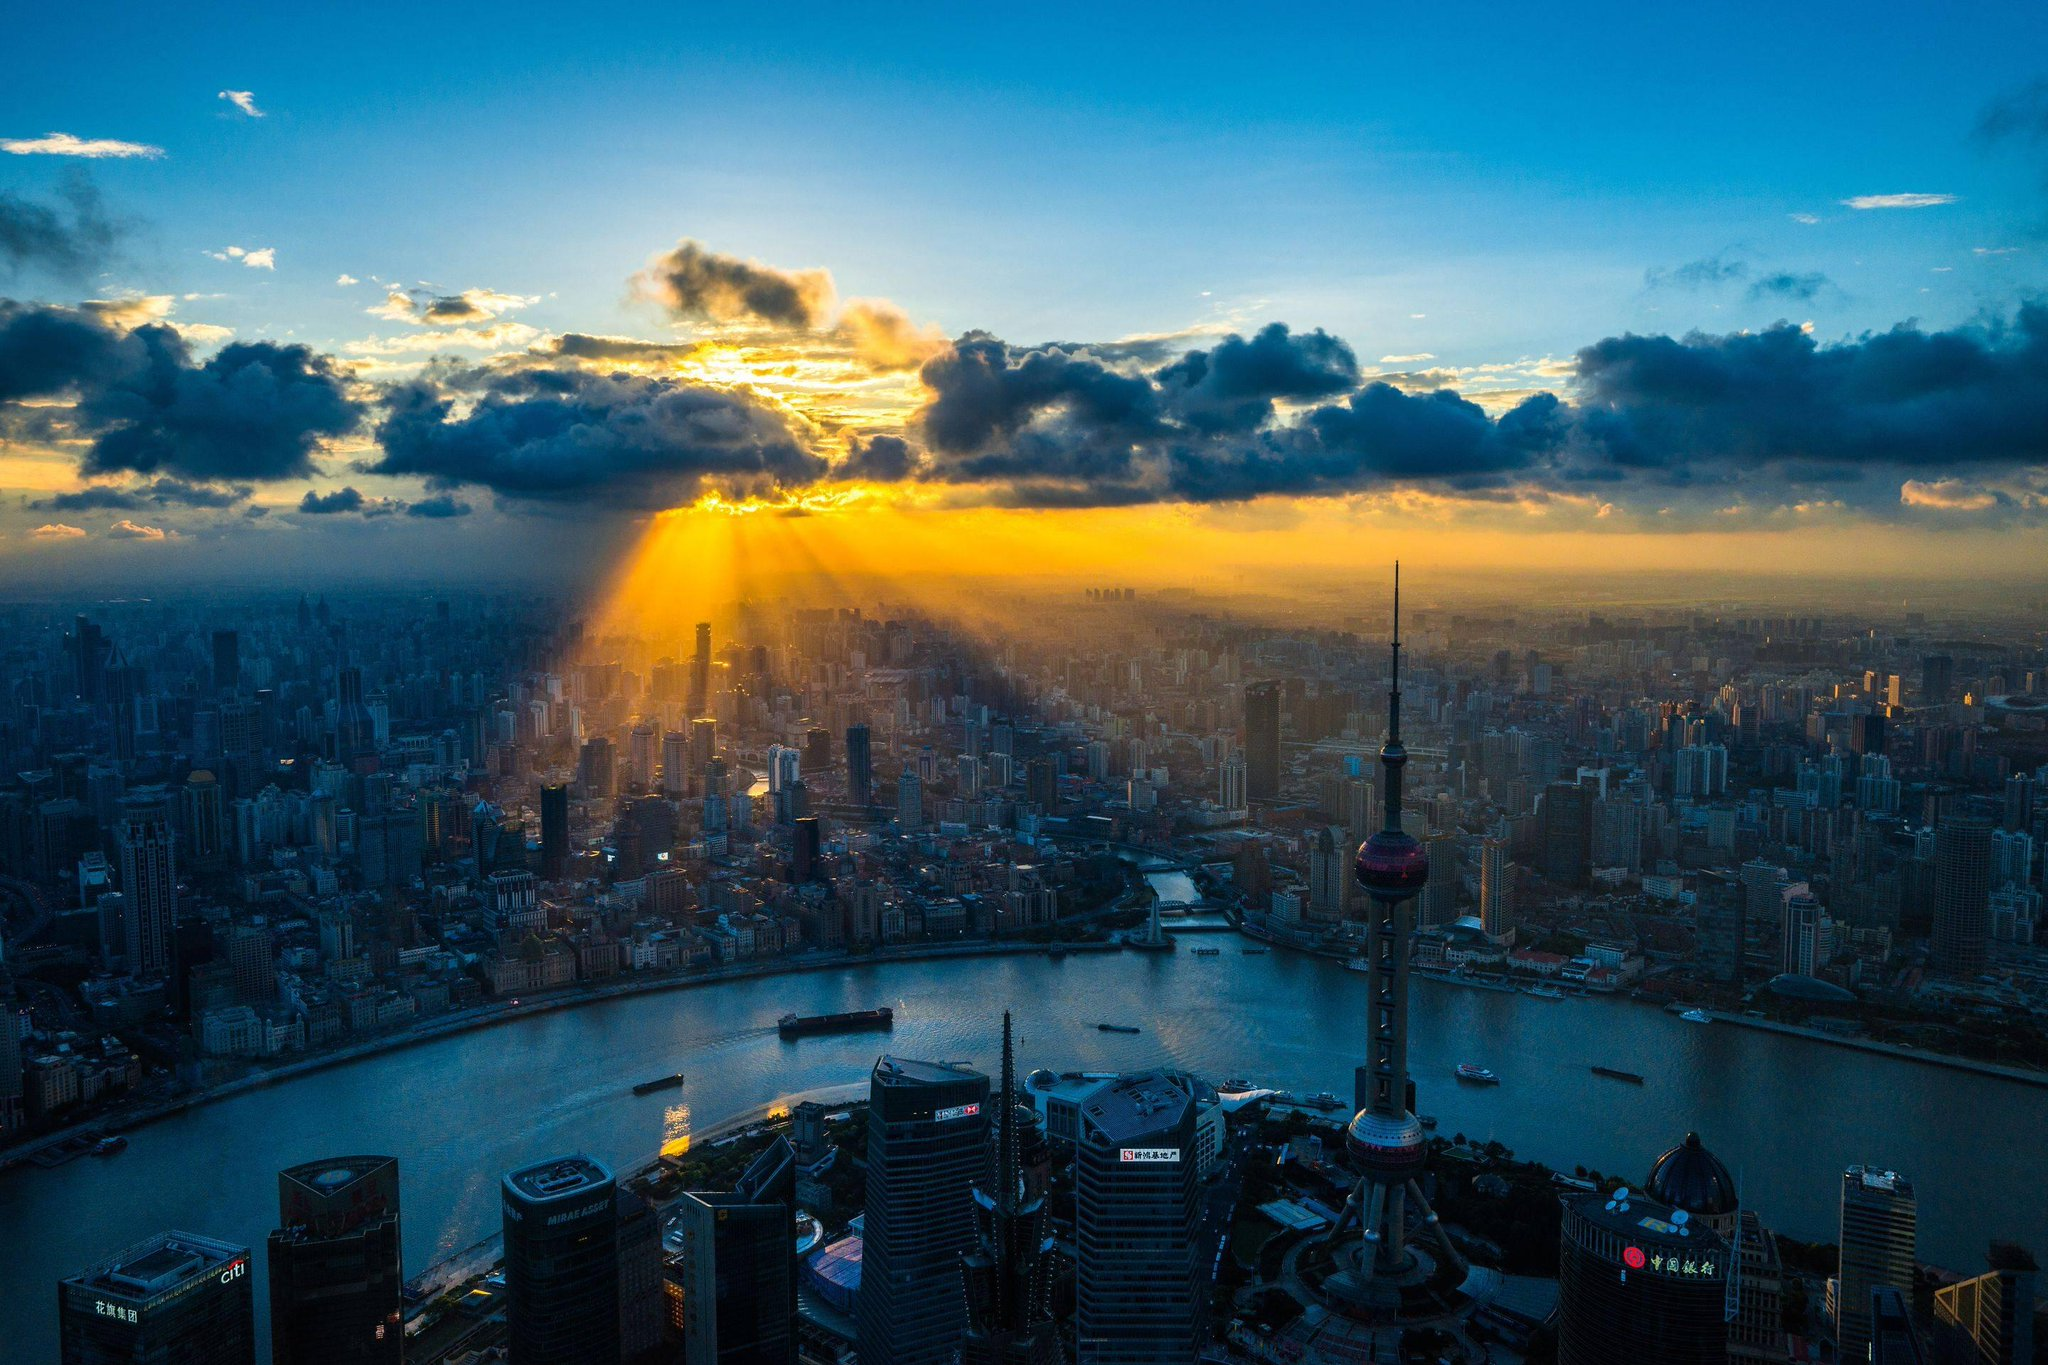 Twitter / Colorcoat: Shanghai under the new dawn ...